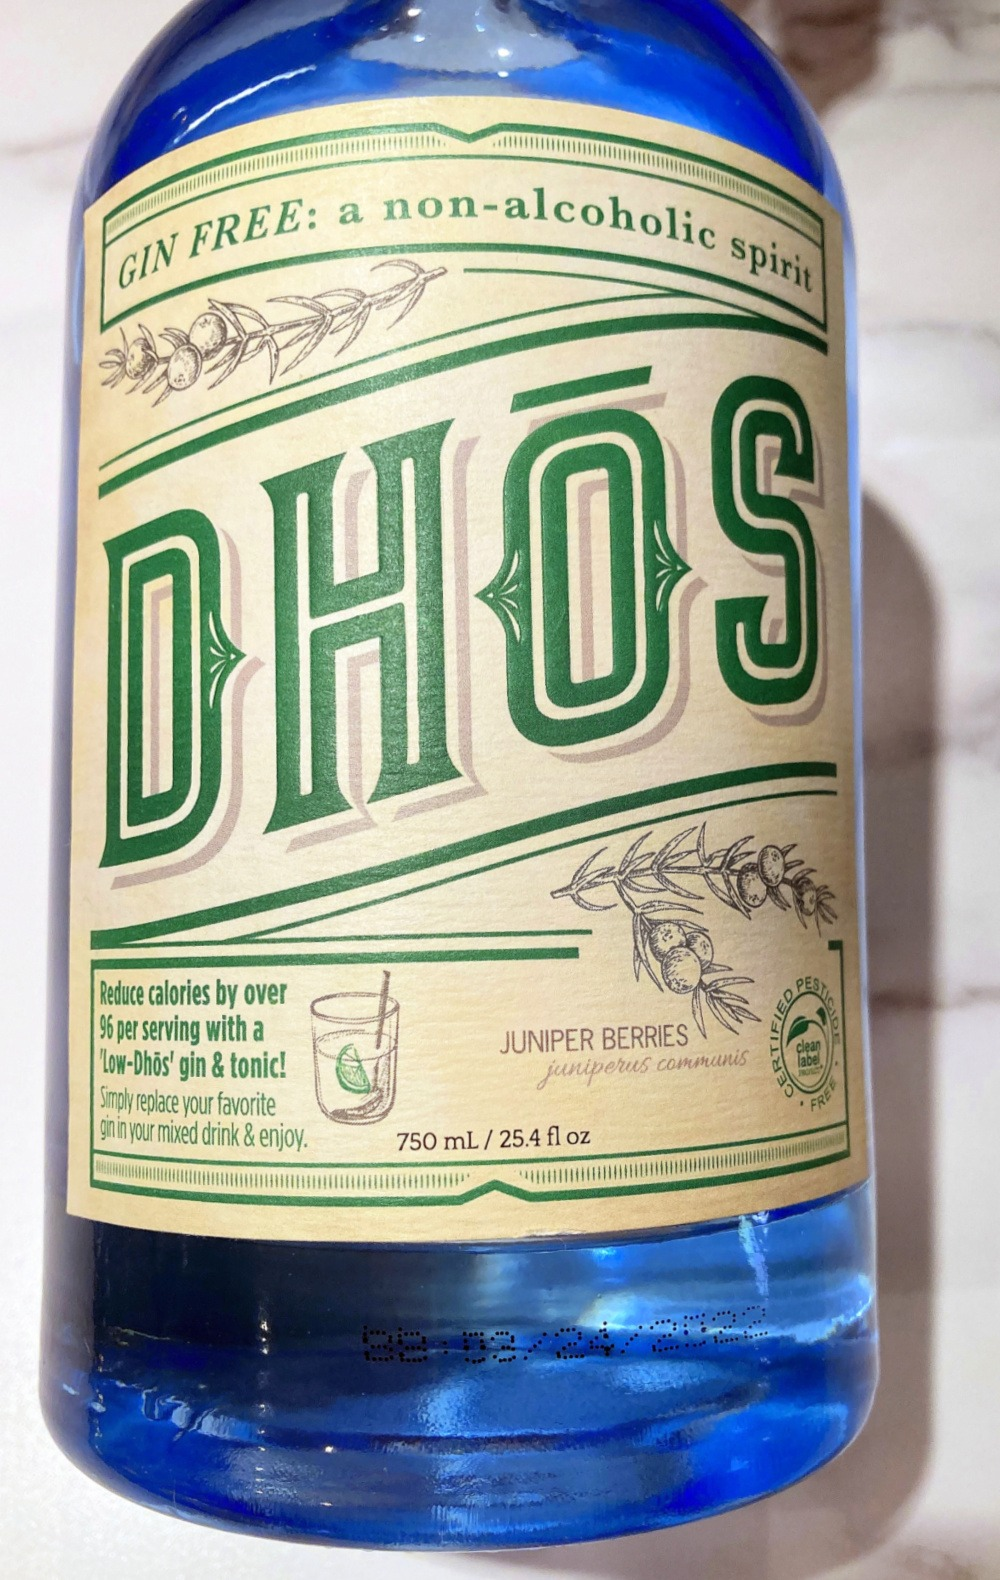 Dhos Gin Free Non-Alcoholic Gin & Tonic